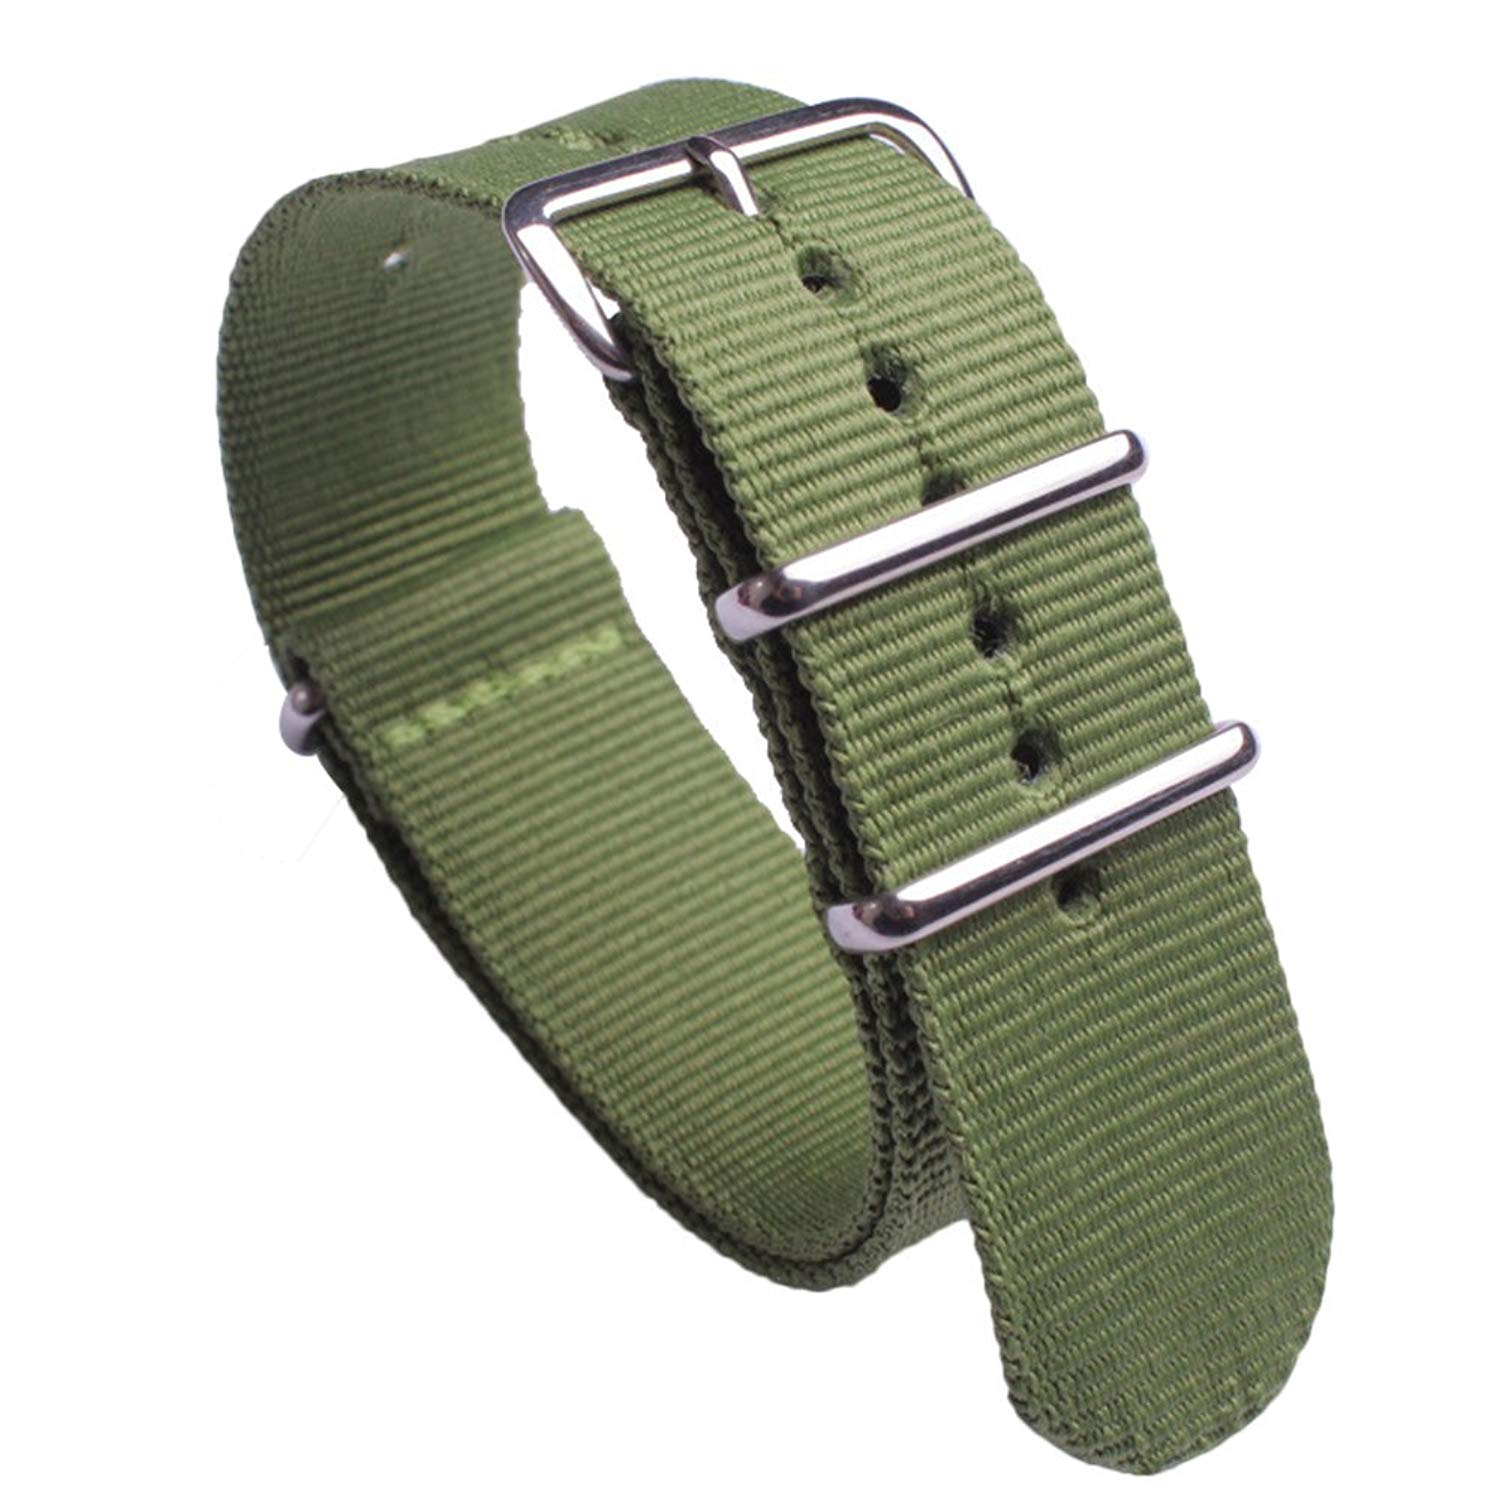 NATO Watch Band with Round String Stainless Steel Buckle Green Premium Ballistic Nylon Watch Strap Replacement Wristband Width 18mm 20mm 22mm 24mm